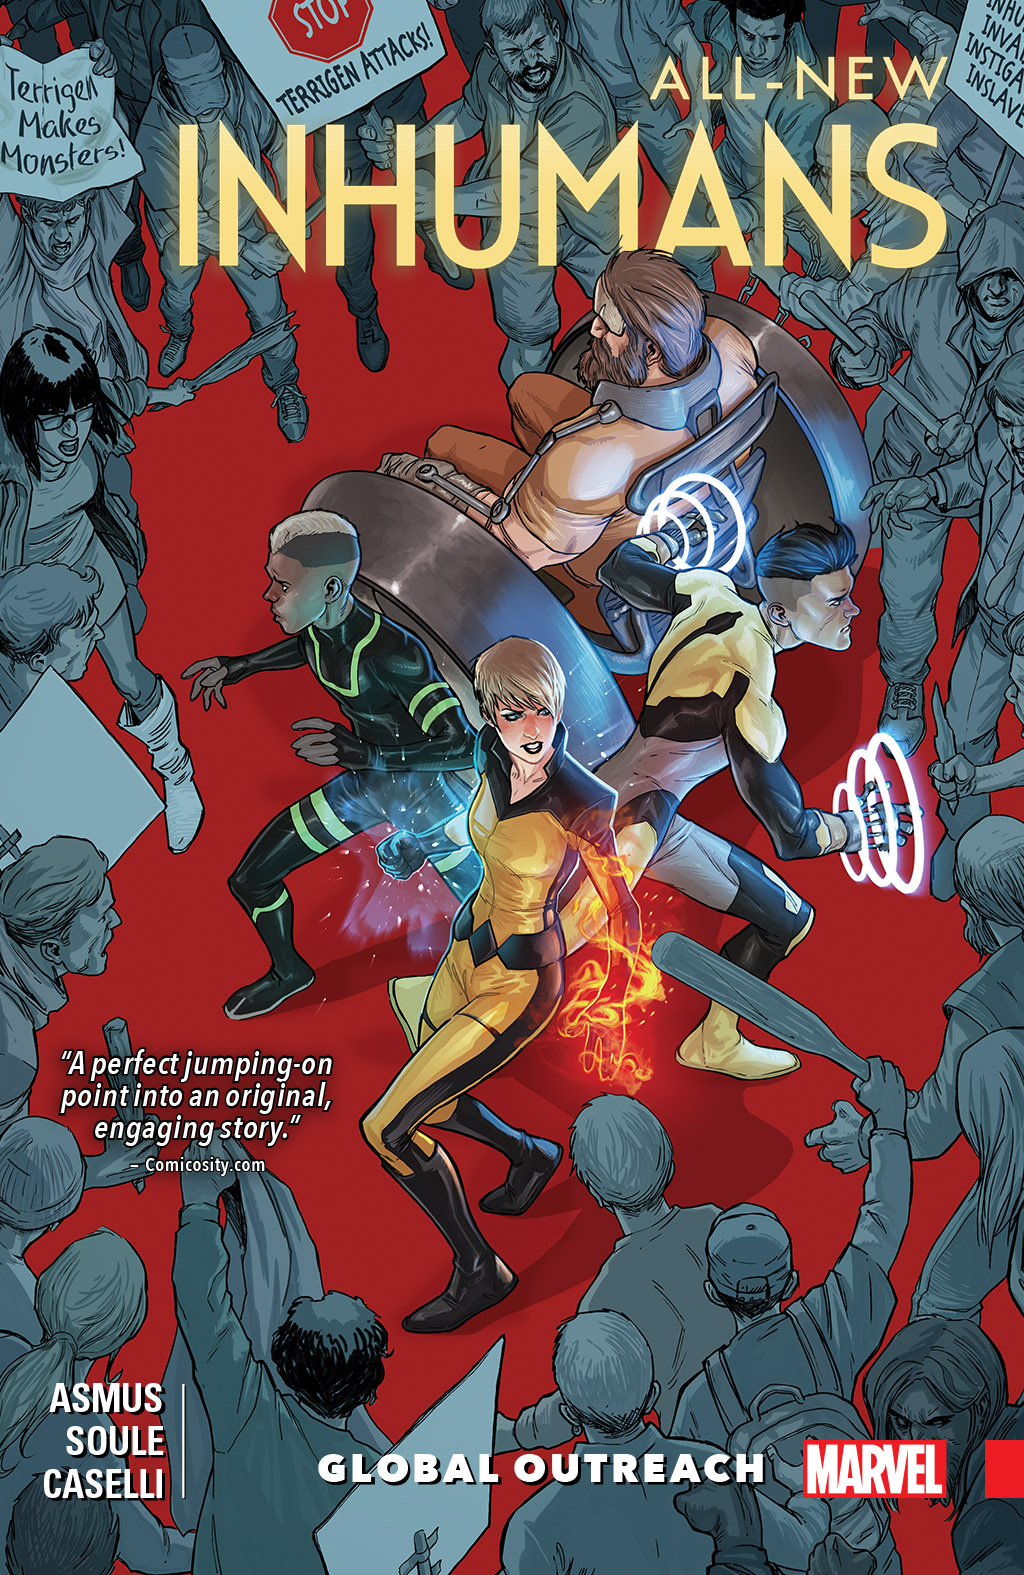 All-New Inhumans Vol. 1: Global Outreach [electronic resource]